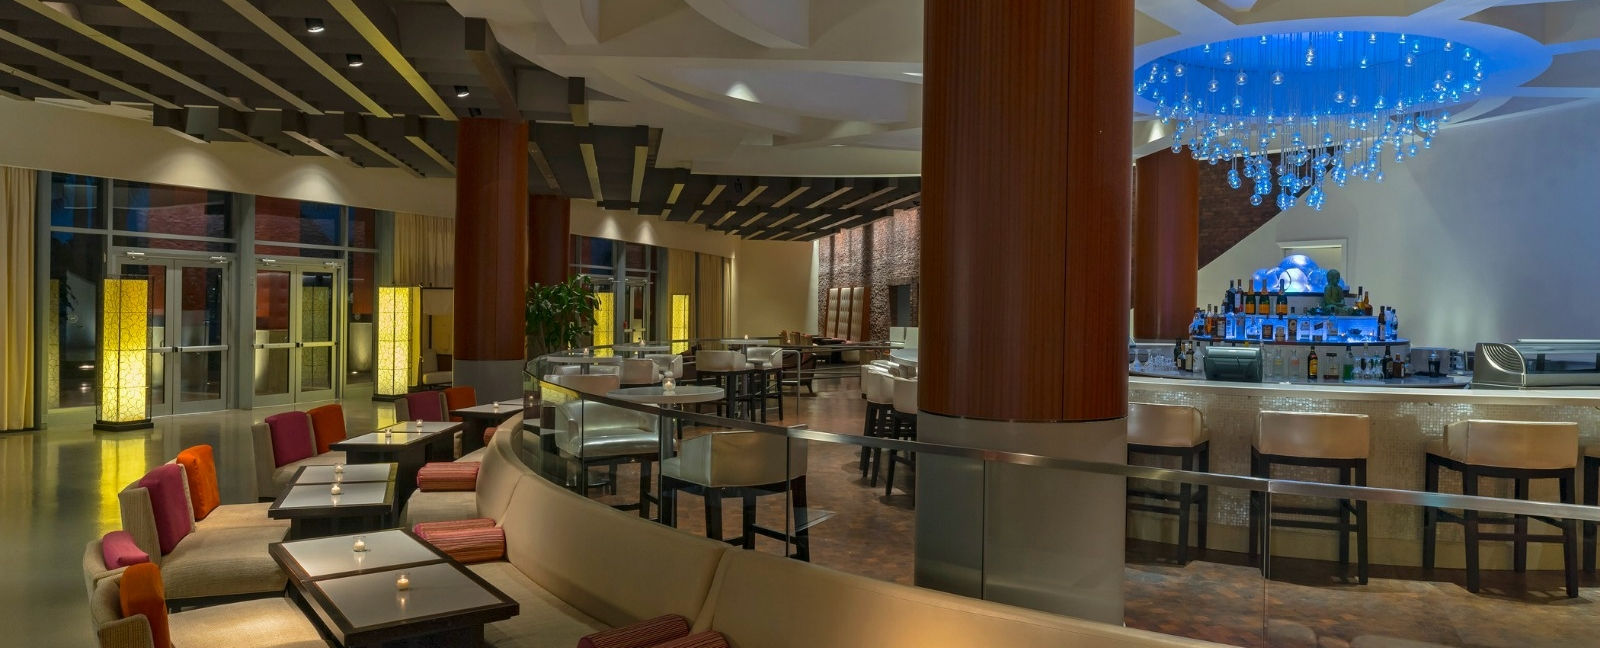 Sheraton Puerto Rico Hotel and Casino - District Lounge & Sushi Bar